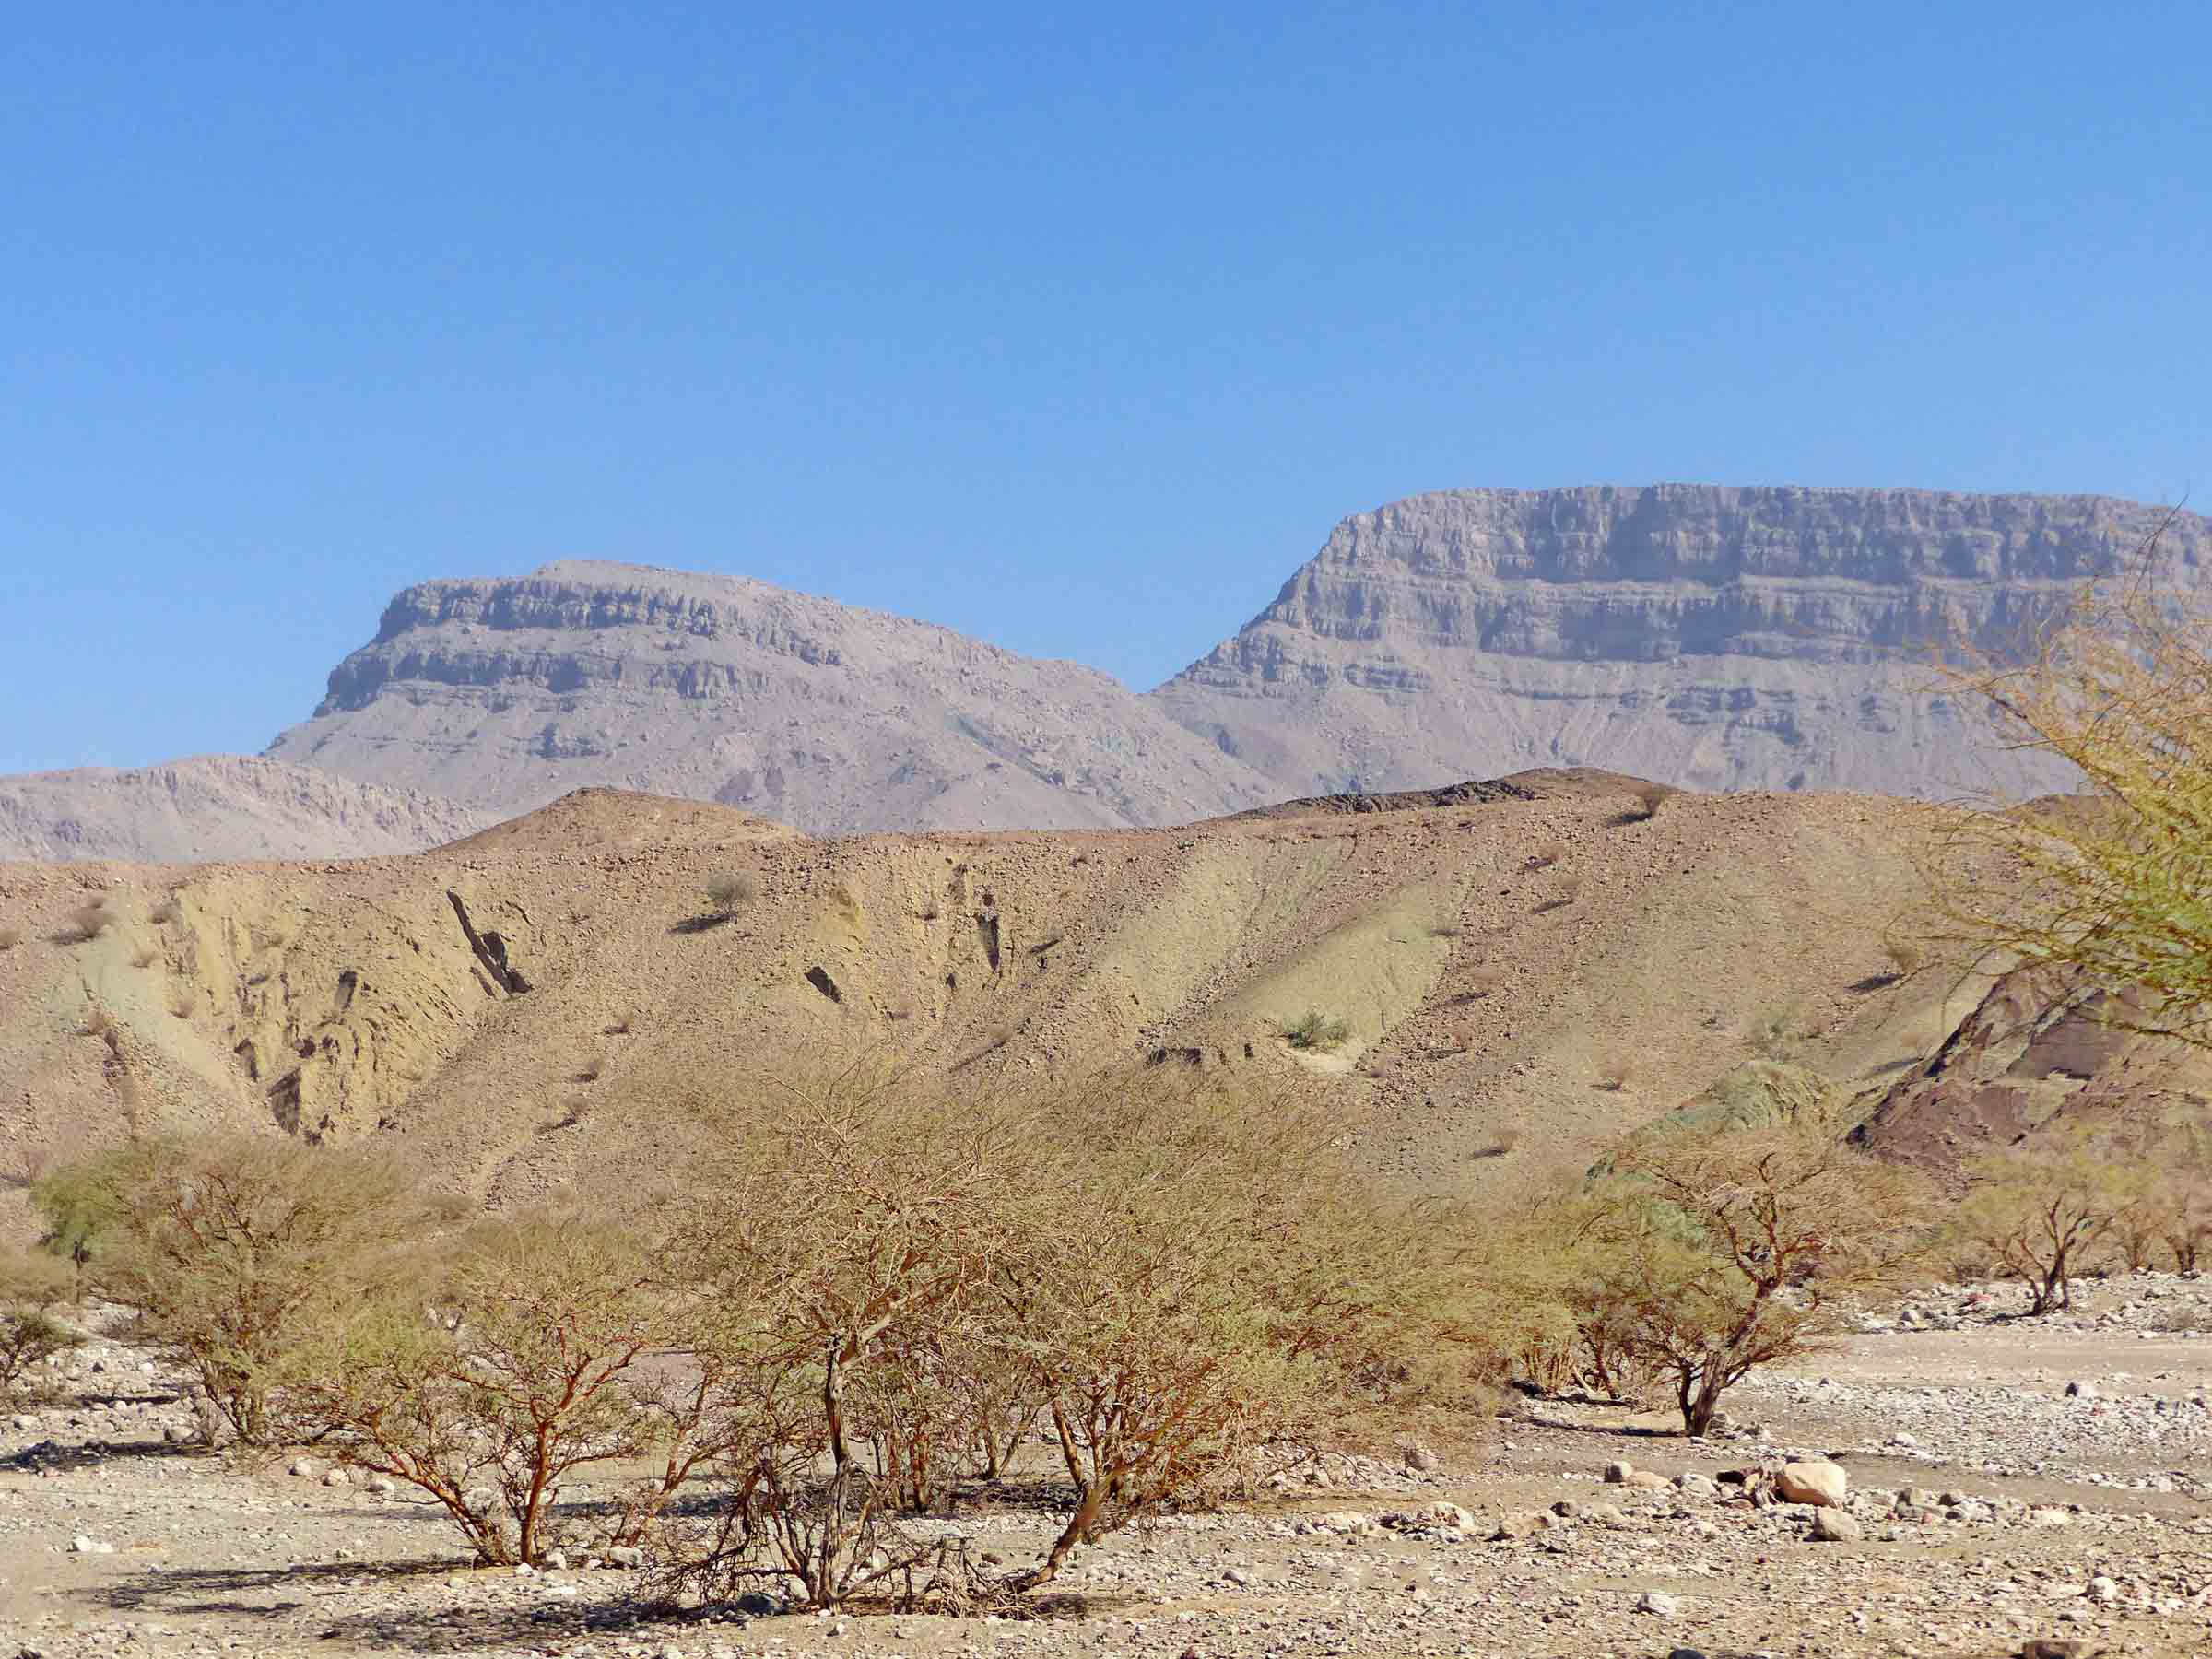 Dry landscape with scrub trees and mountains